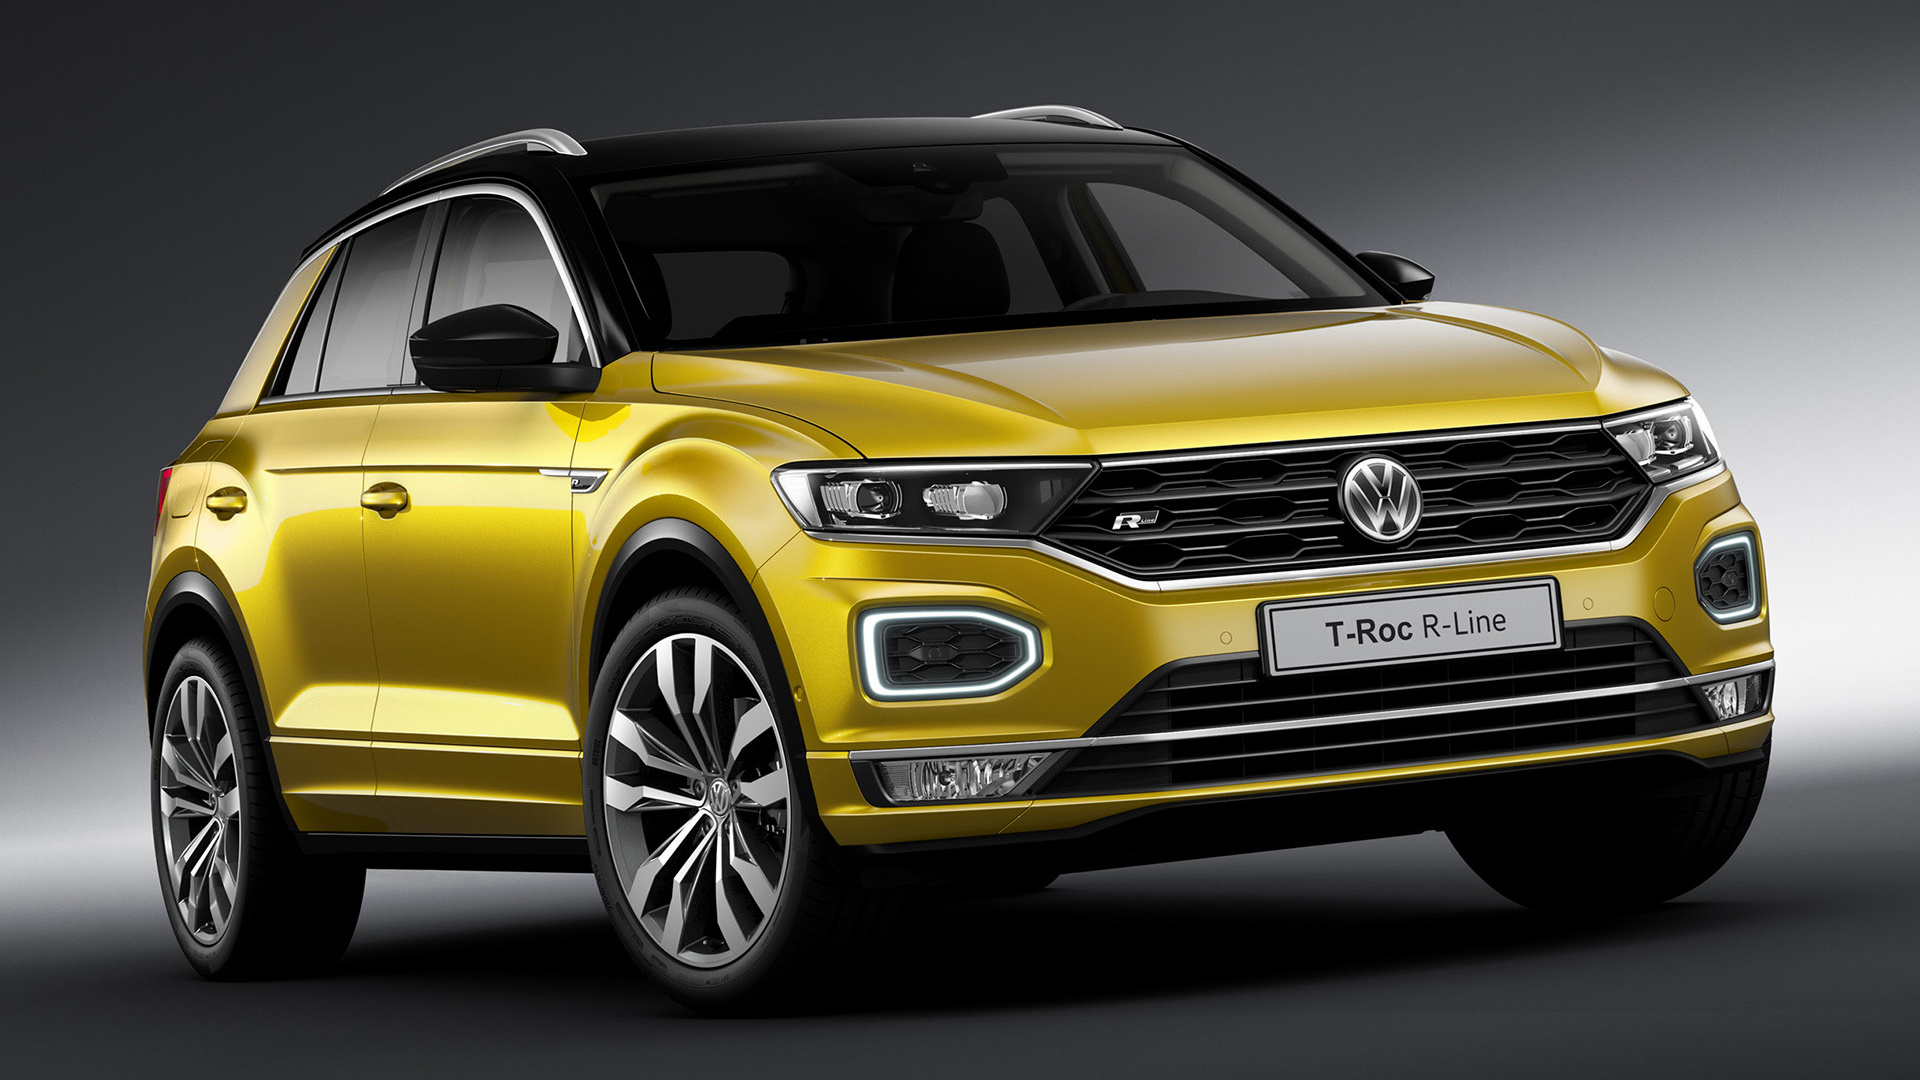 volkswagen t roc r line 2017 wallpapers and hd images. Black Bedroom Furniture Sets. Home Design Ideas